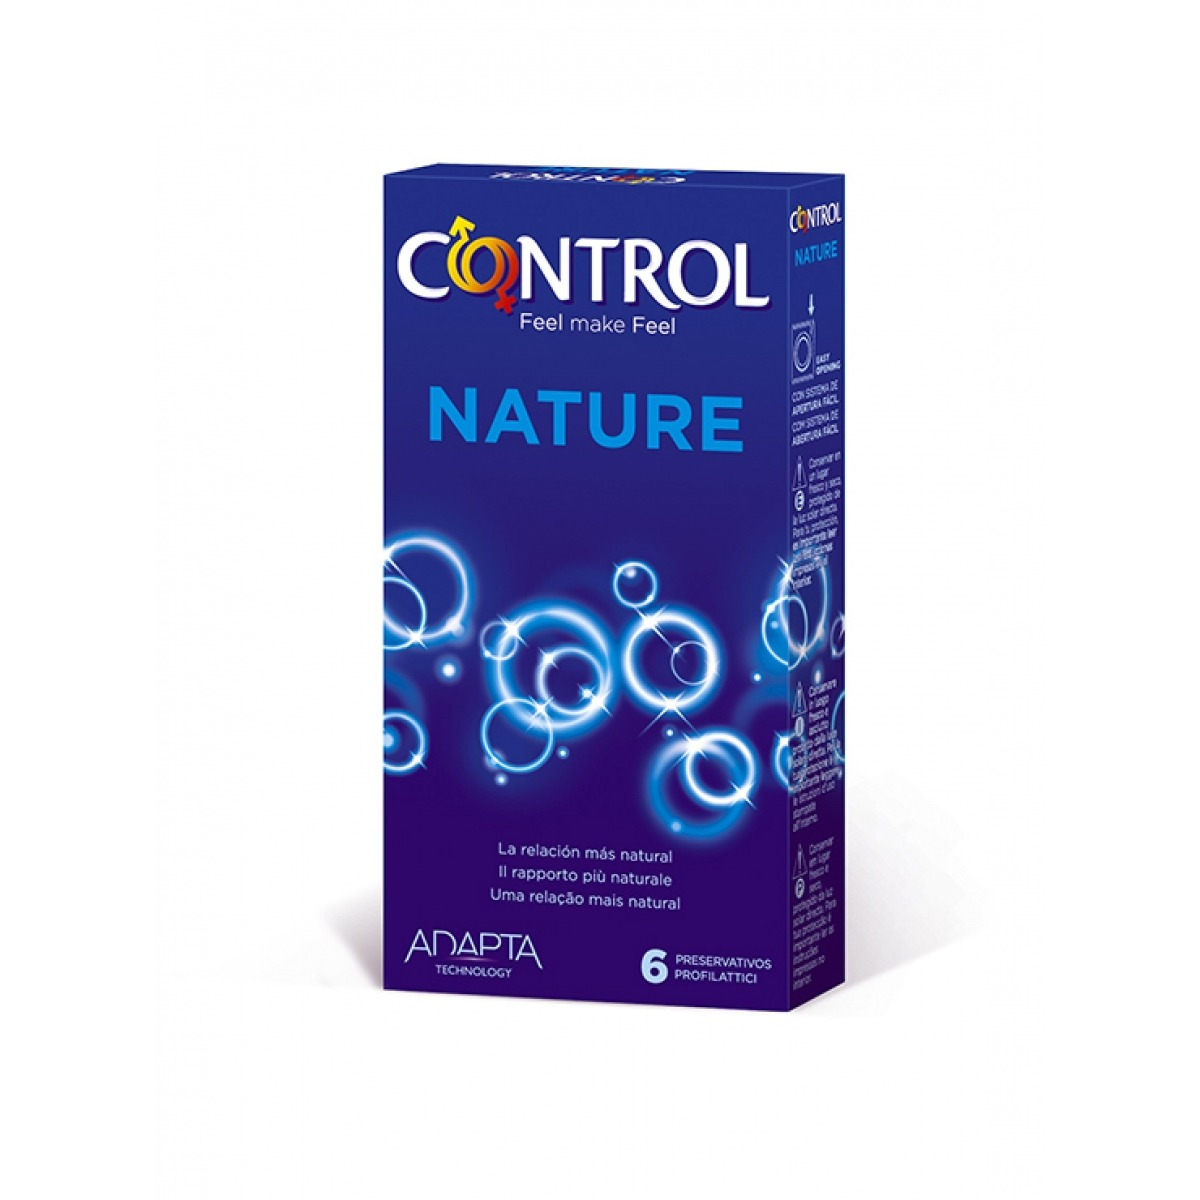 CONTROL ADAPTA NATURE 6 UNIDADES